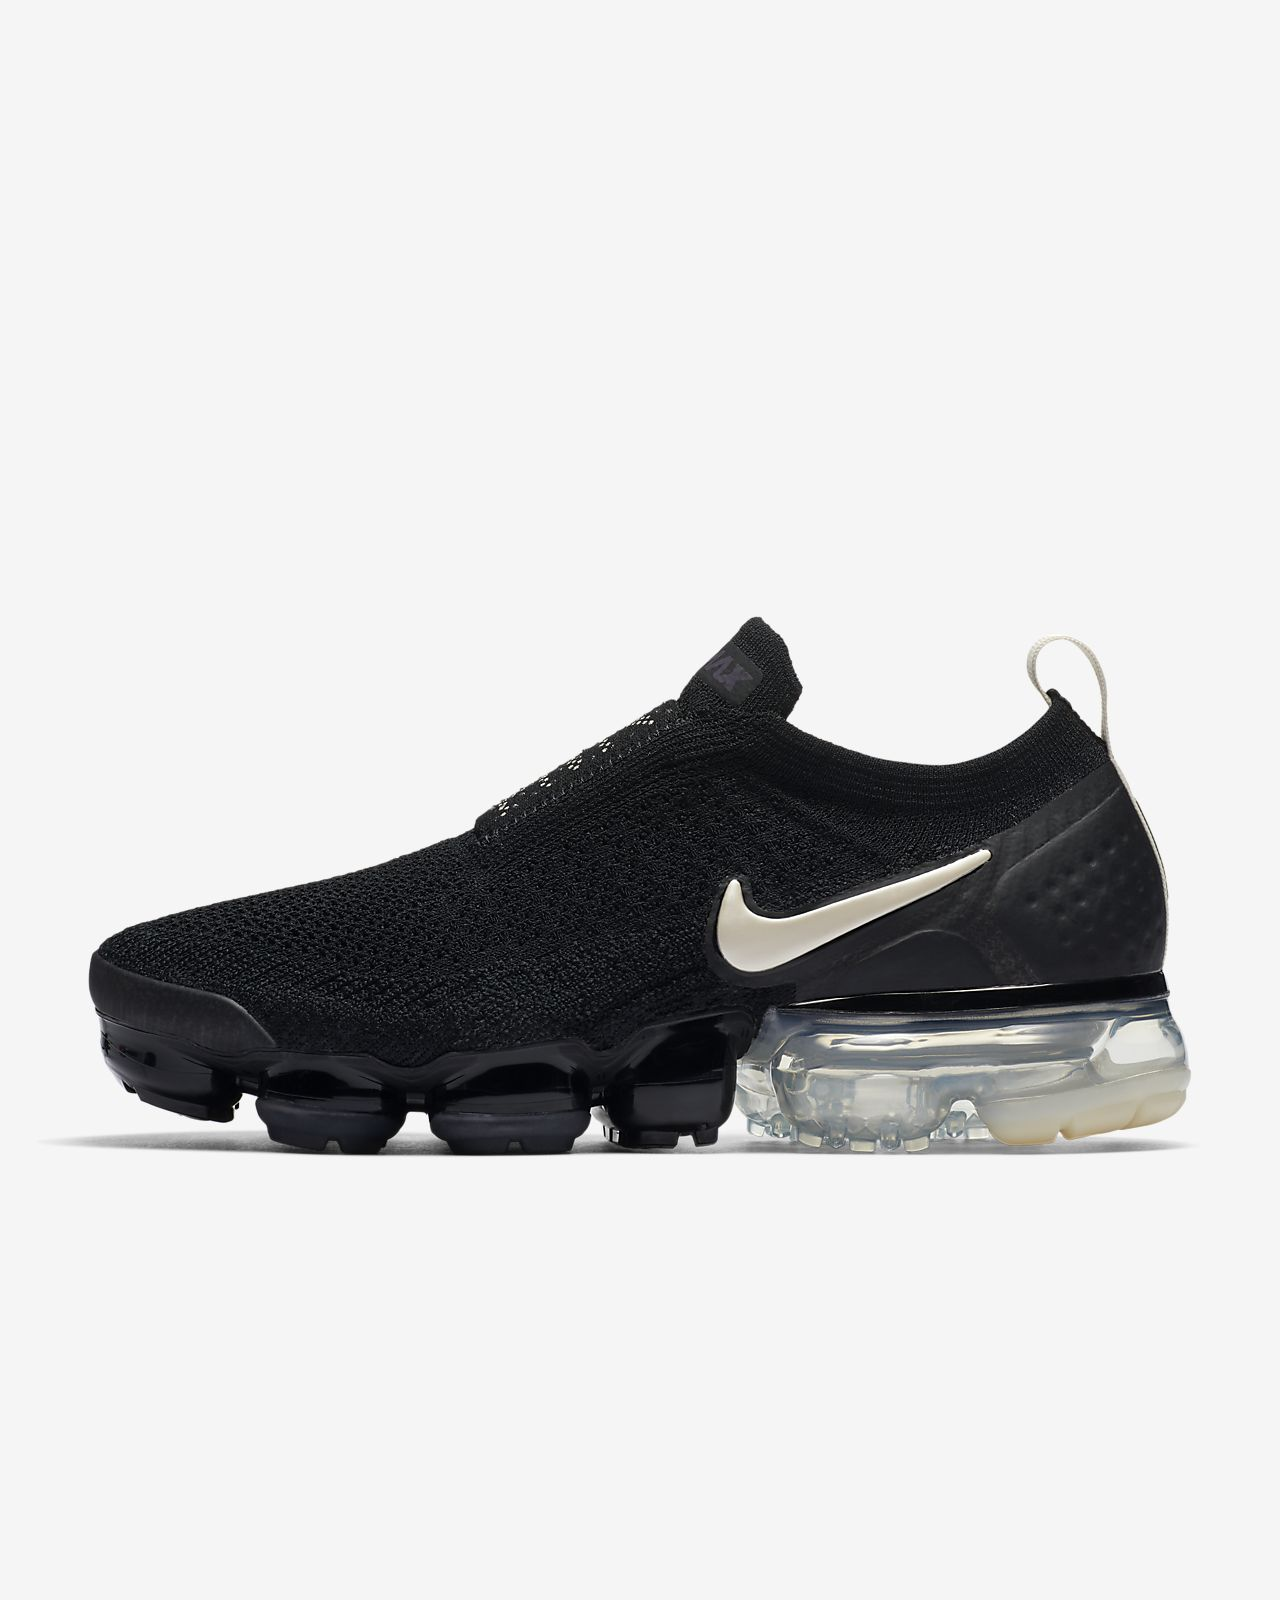 Air 2 Moc Be Pour Nike Flyknit Vapormax Femme Chaussure Pq1gn d1c410caa09